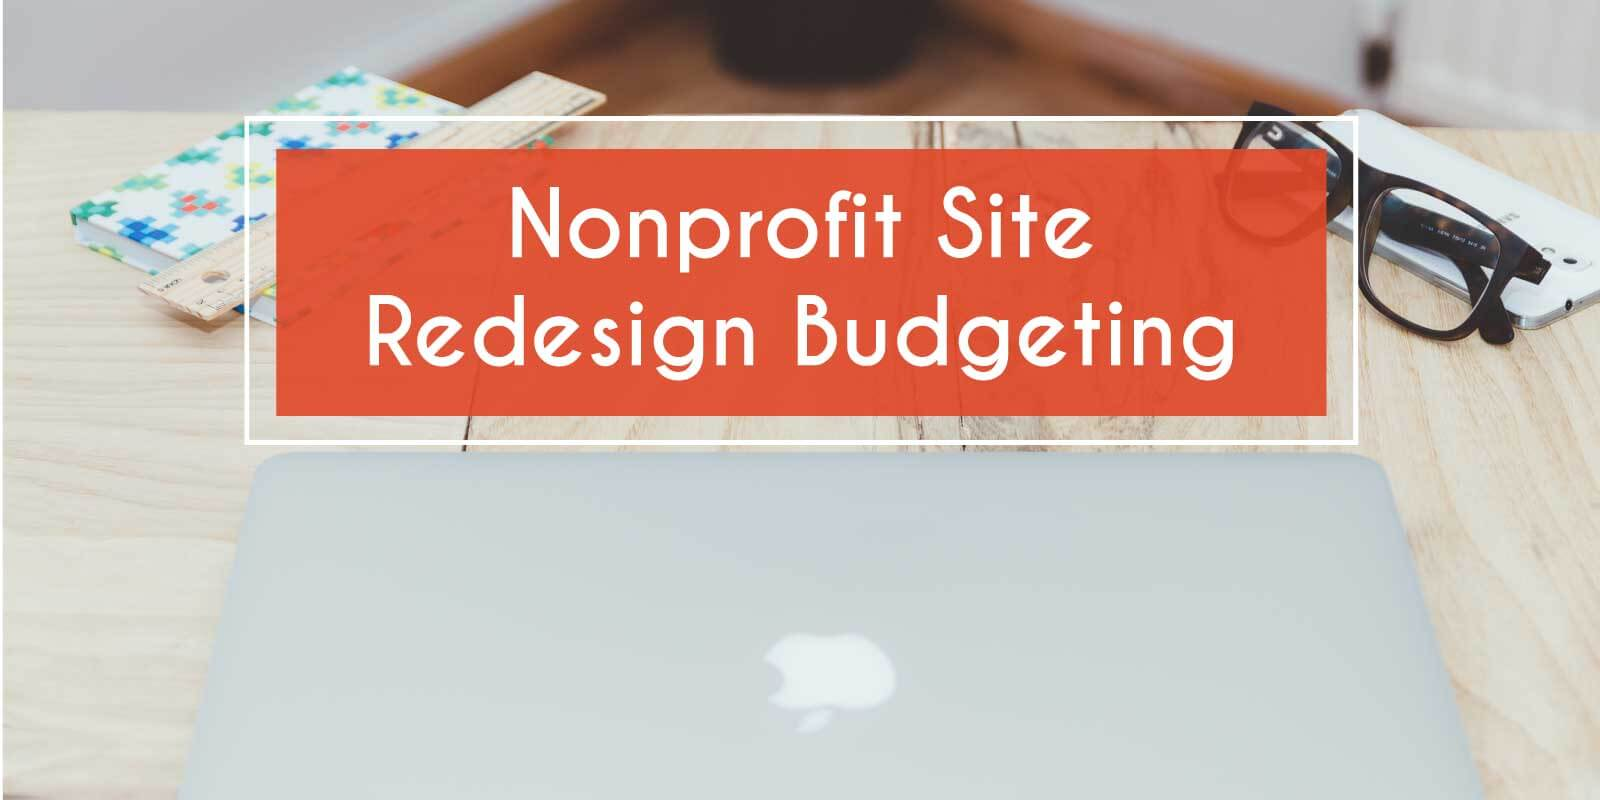 nonprofit-redesign-budgeting